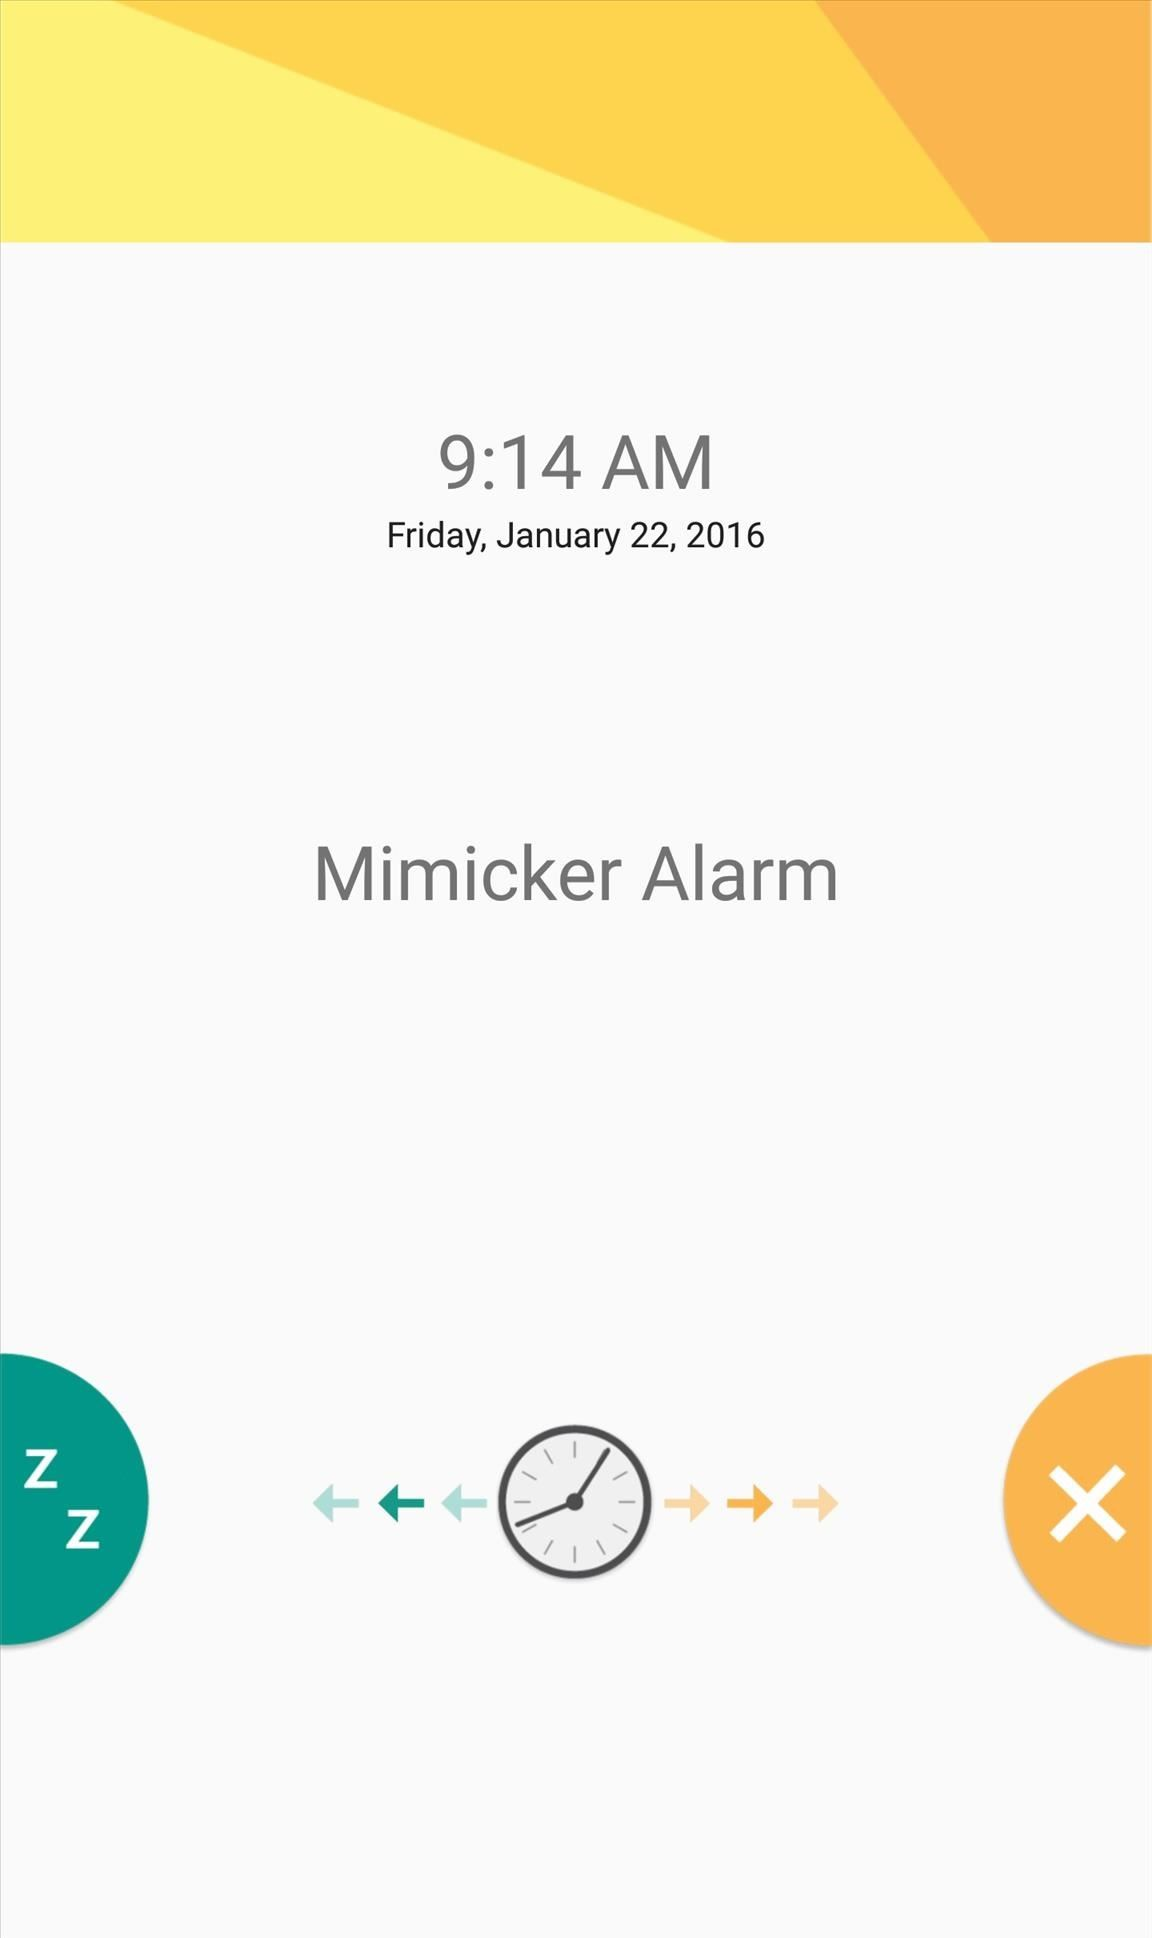 Microsoft's Android Alarm App Has a Weird New Way to Get You Out of Bed in the Morning